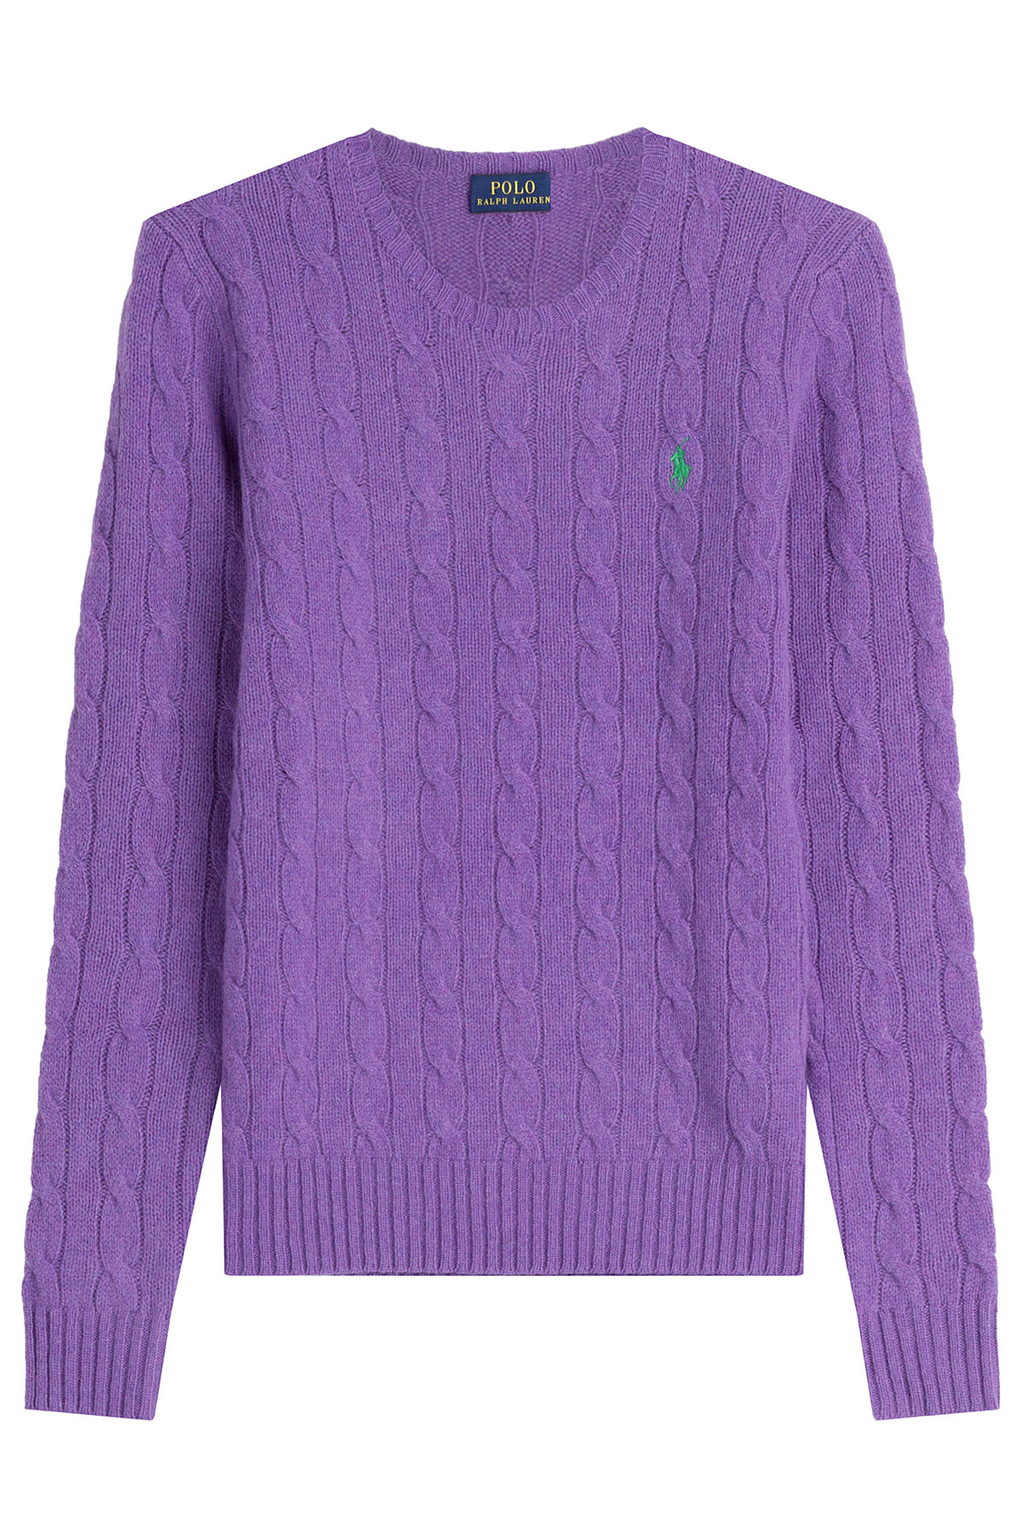 Merino Wool Cable Knit Pullover Purple - style: standard; pattern: cable knit; predominant colour: purple; occasions: casual; length: standard; fibres: wool - 100%; fit: slim fit; neckline: crew; sleeve length: long sleeve; sleeve style: standard; texture group: knits/crochet; pattern type: fabric; season: s/s 2016